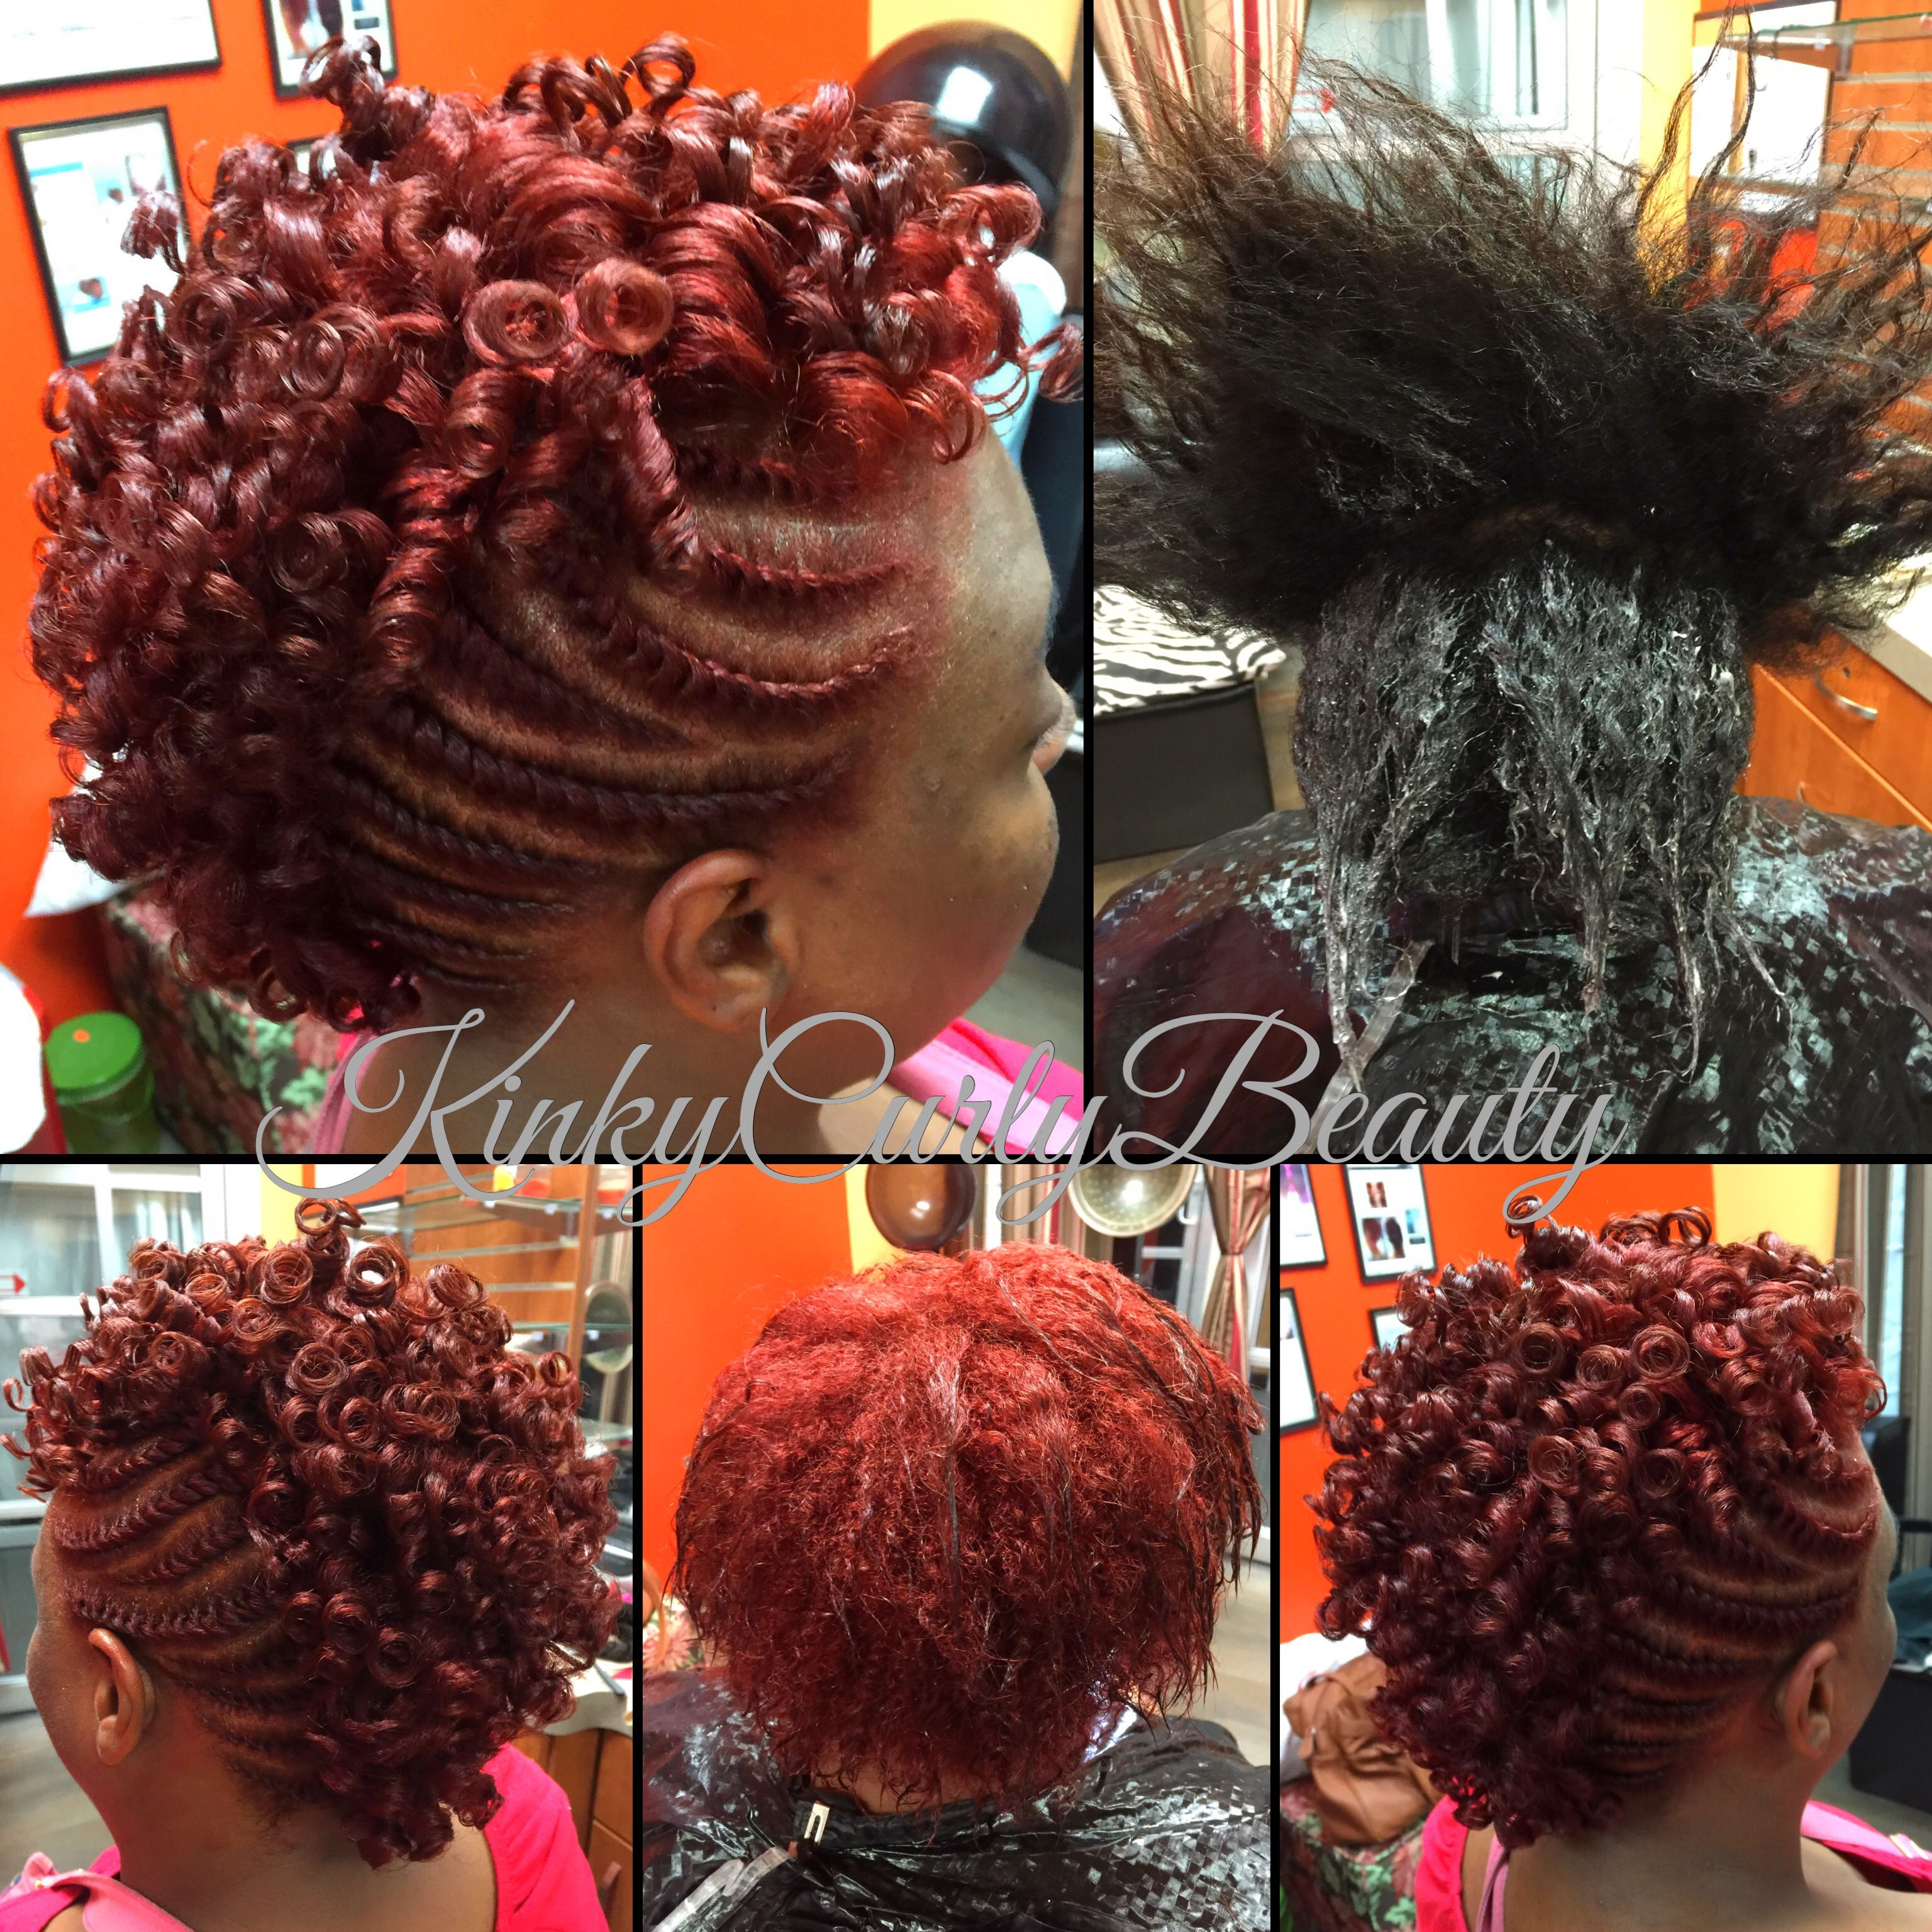 new color with a flat twist, rodded mohawk | hair styles by kinky